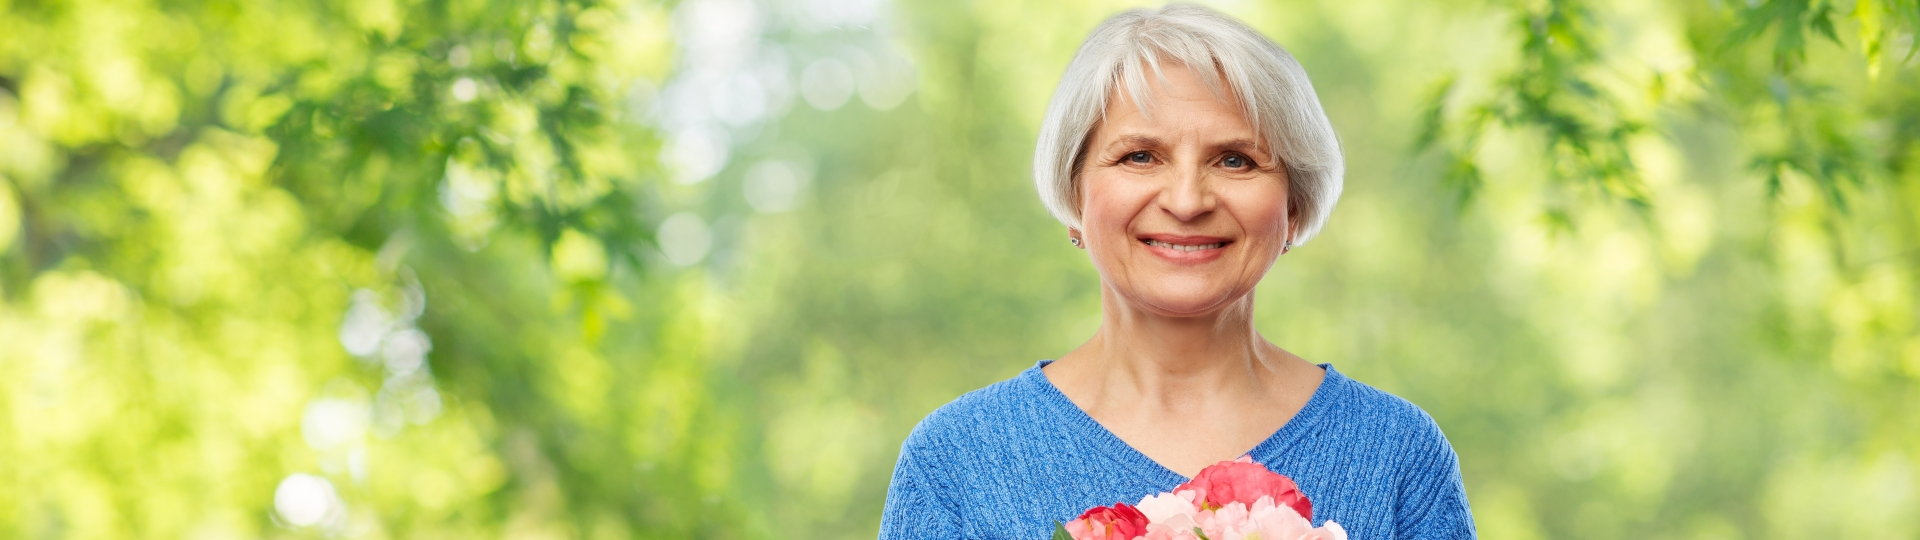 Elderly Woman Holding Roses